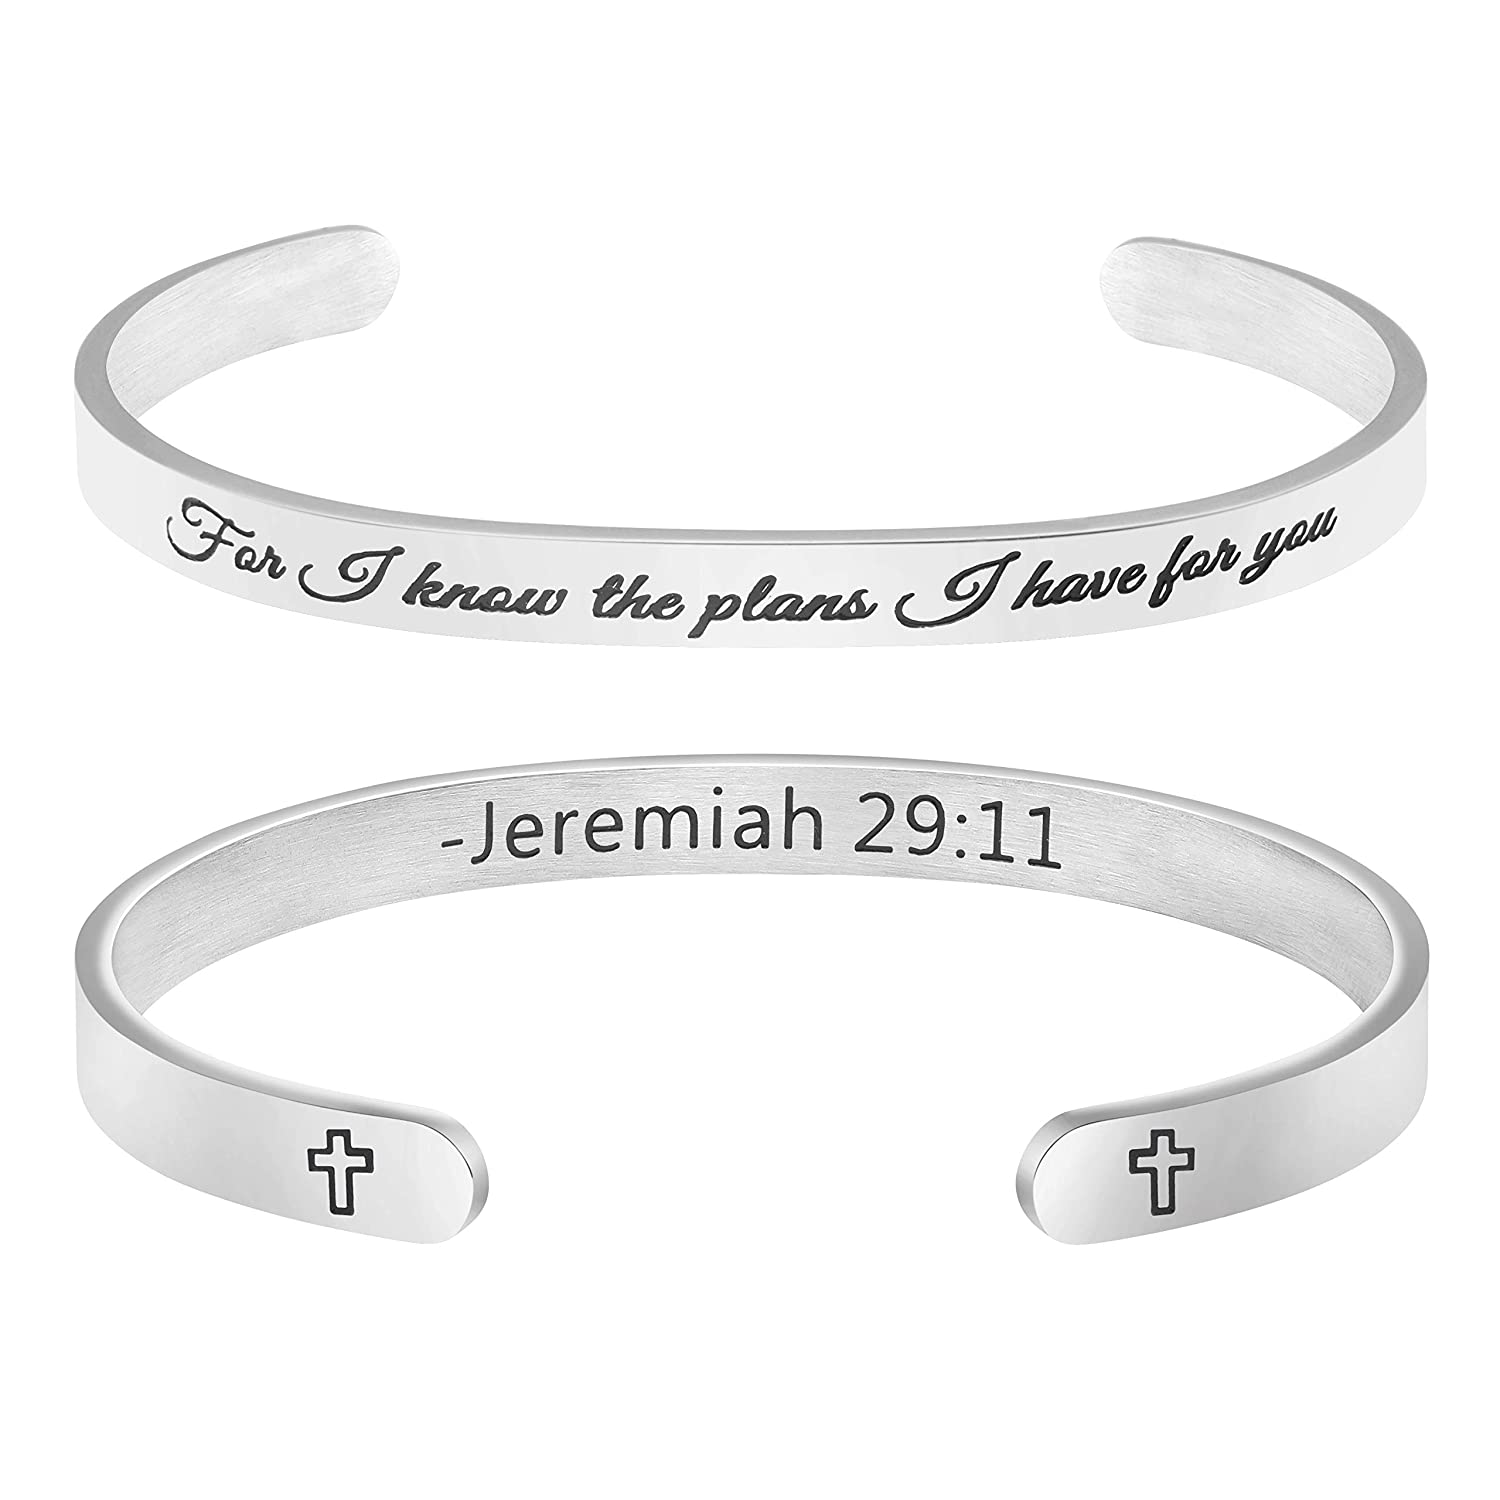 Gifts for Her Religious Bracelet Christian Jewelry Scripture Bible Verse Engraved Cuff Bangle for I Know The Plans I Have for You Jeremiah 29:11' Shiguang